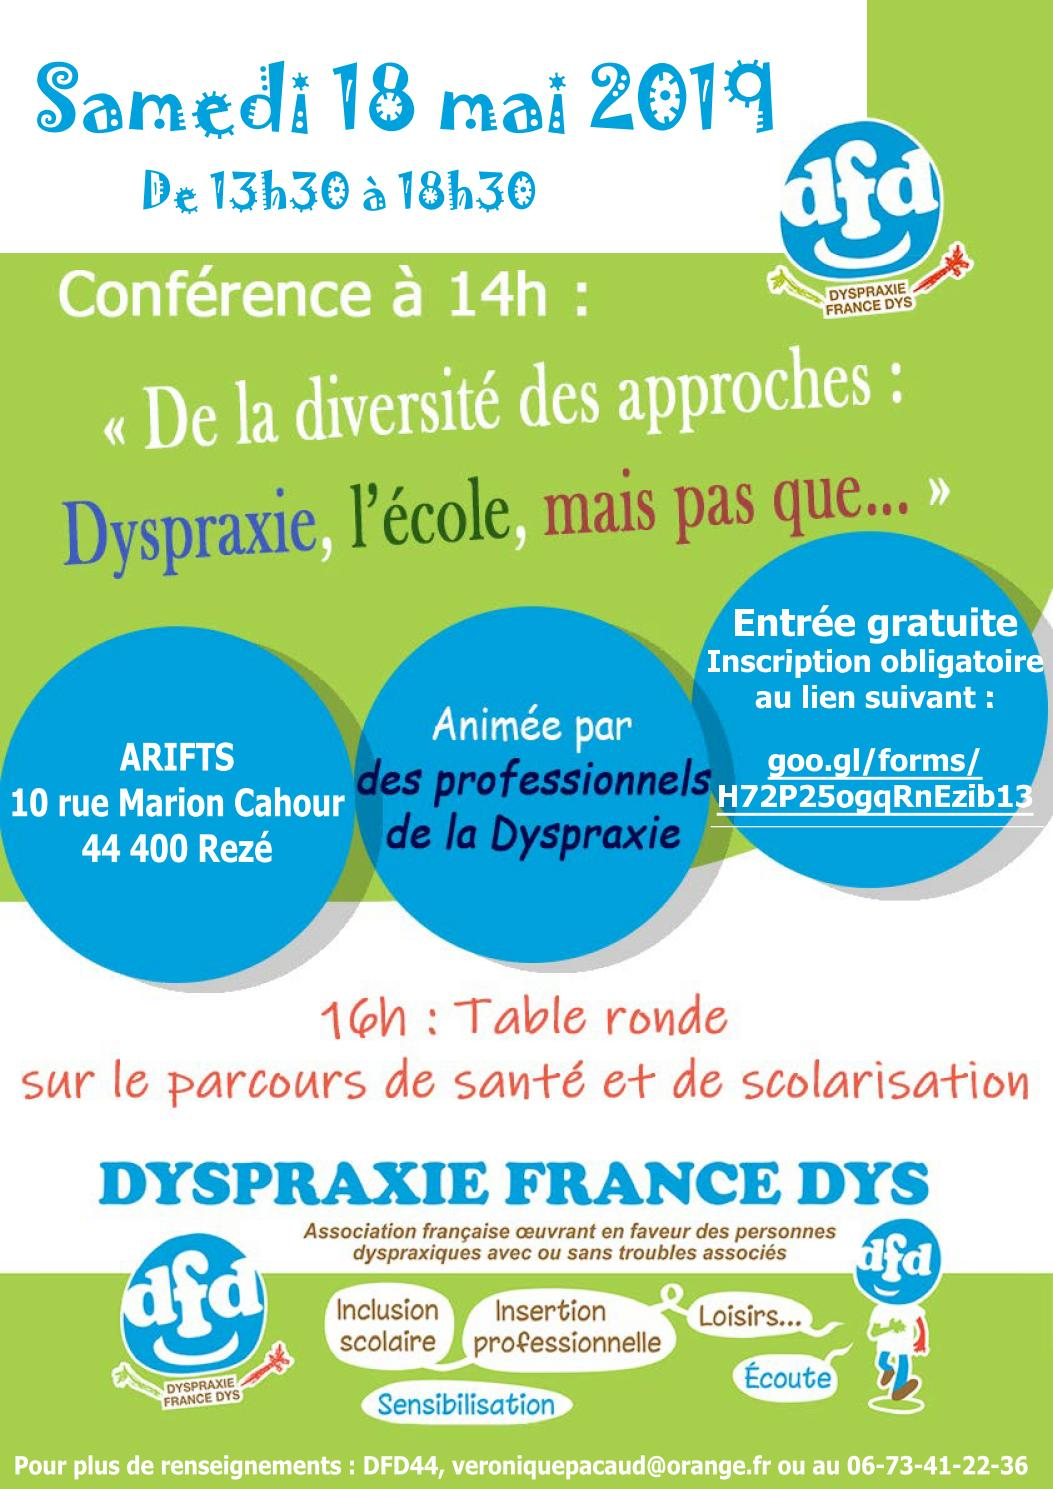 Rencontre nationale sur la dyspraxie à Nantes